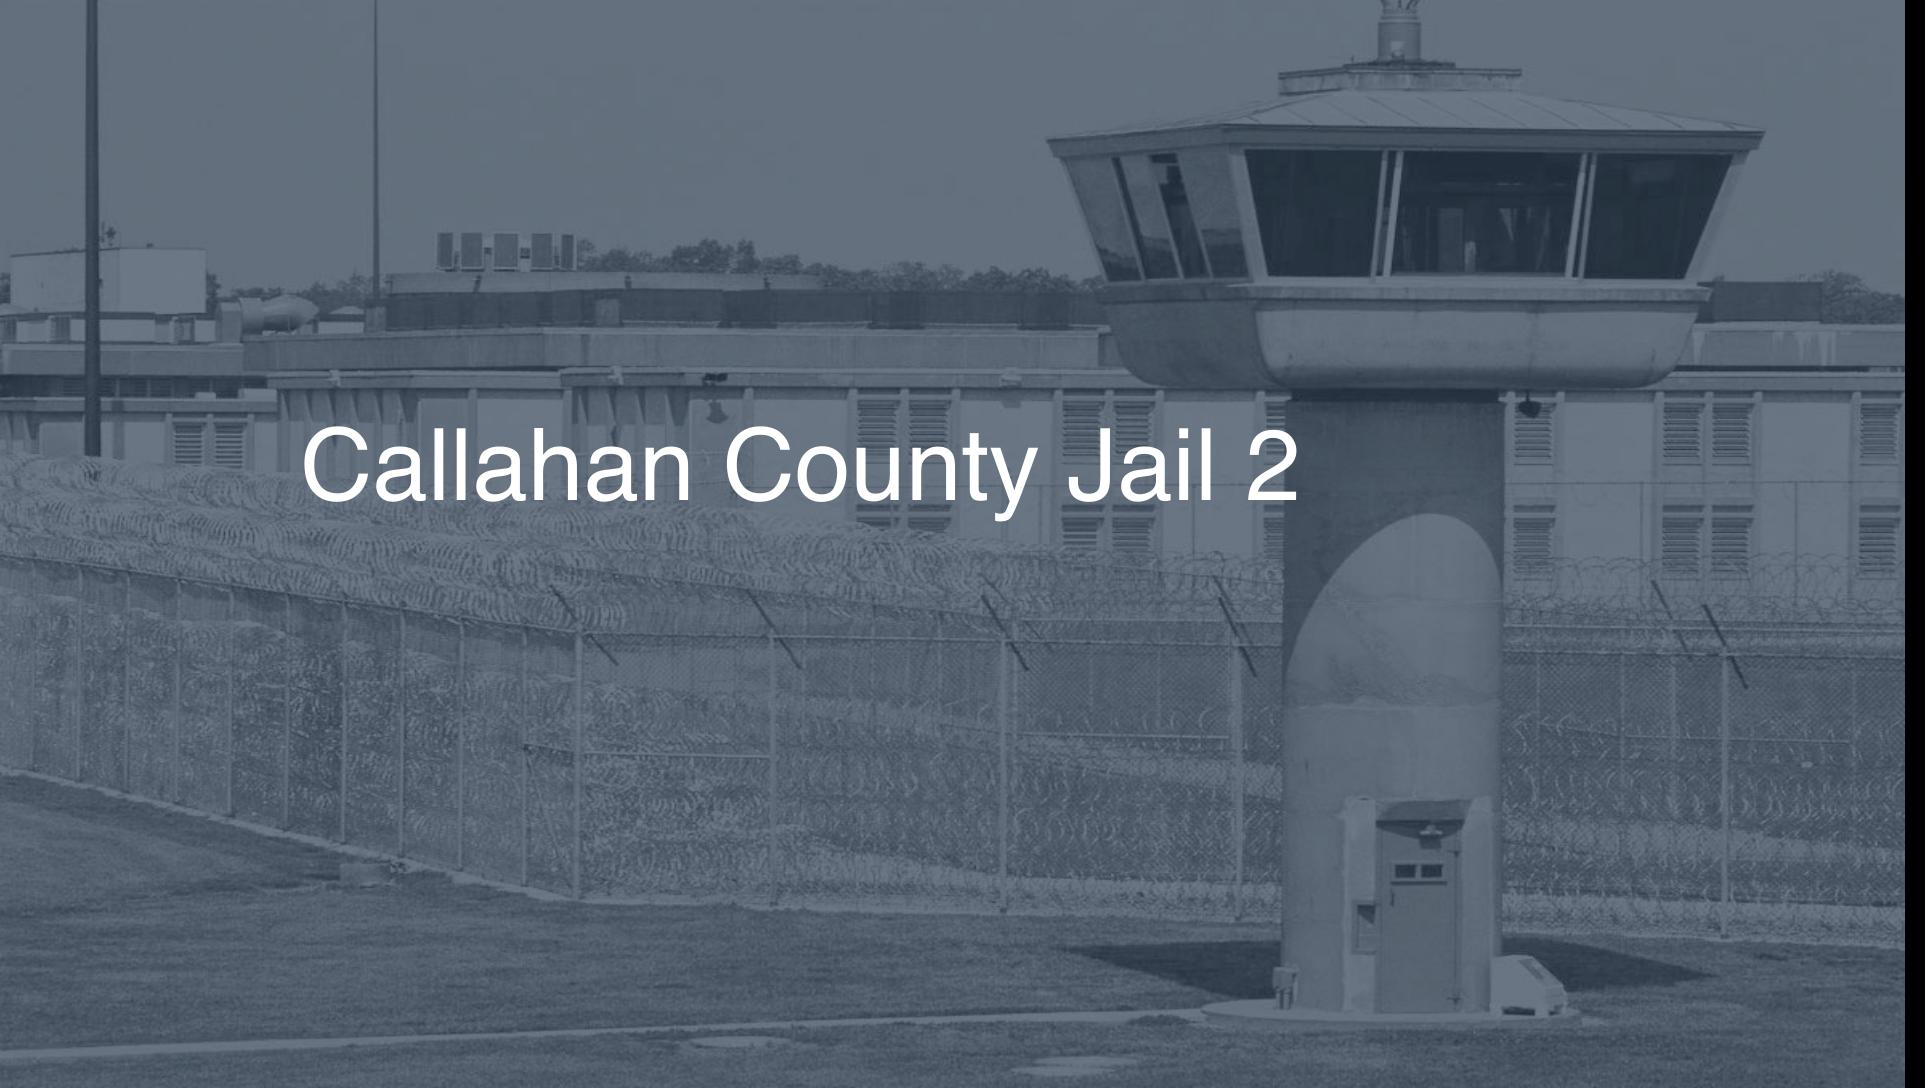 Callahan County Jail correctional facility picture